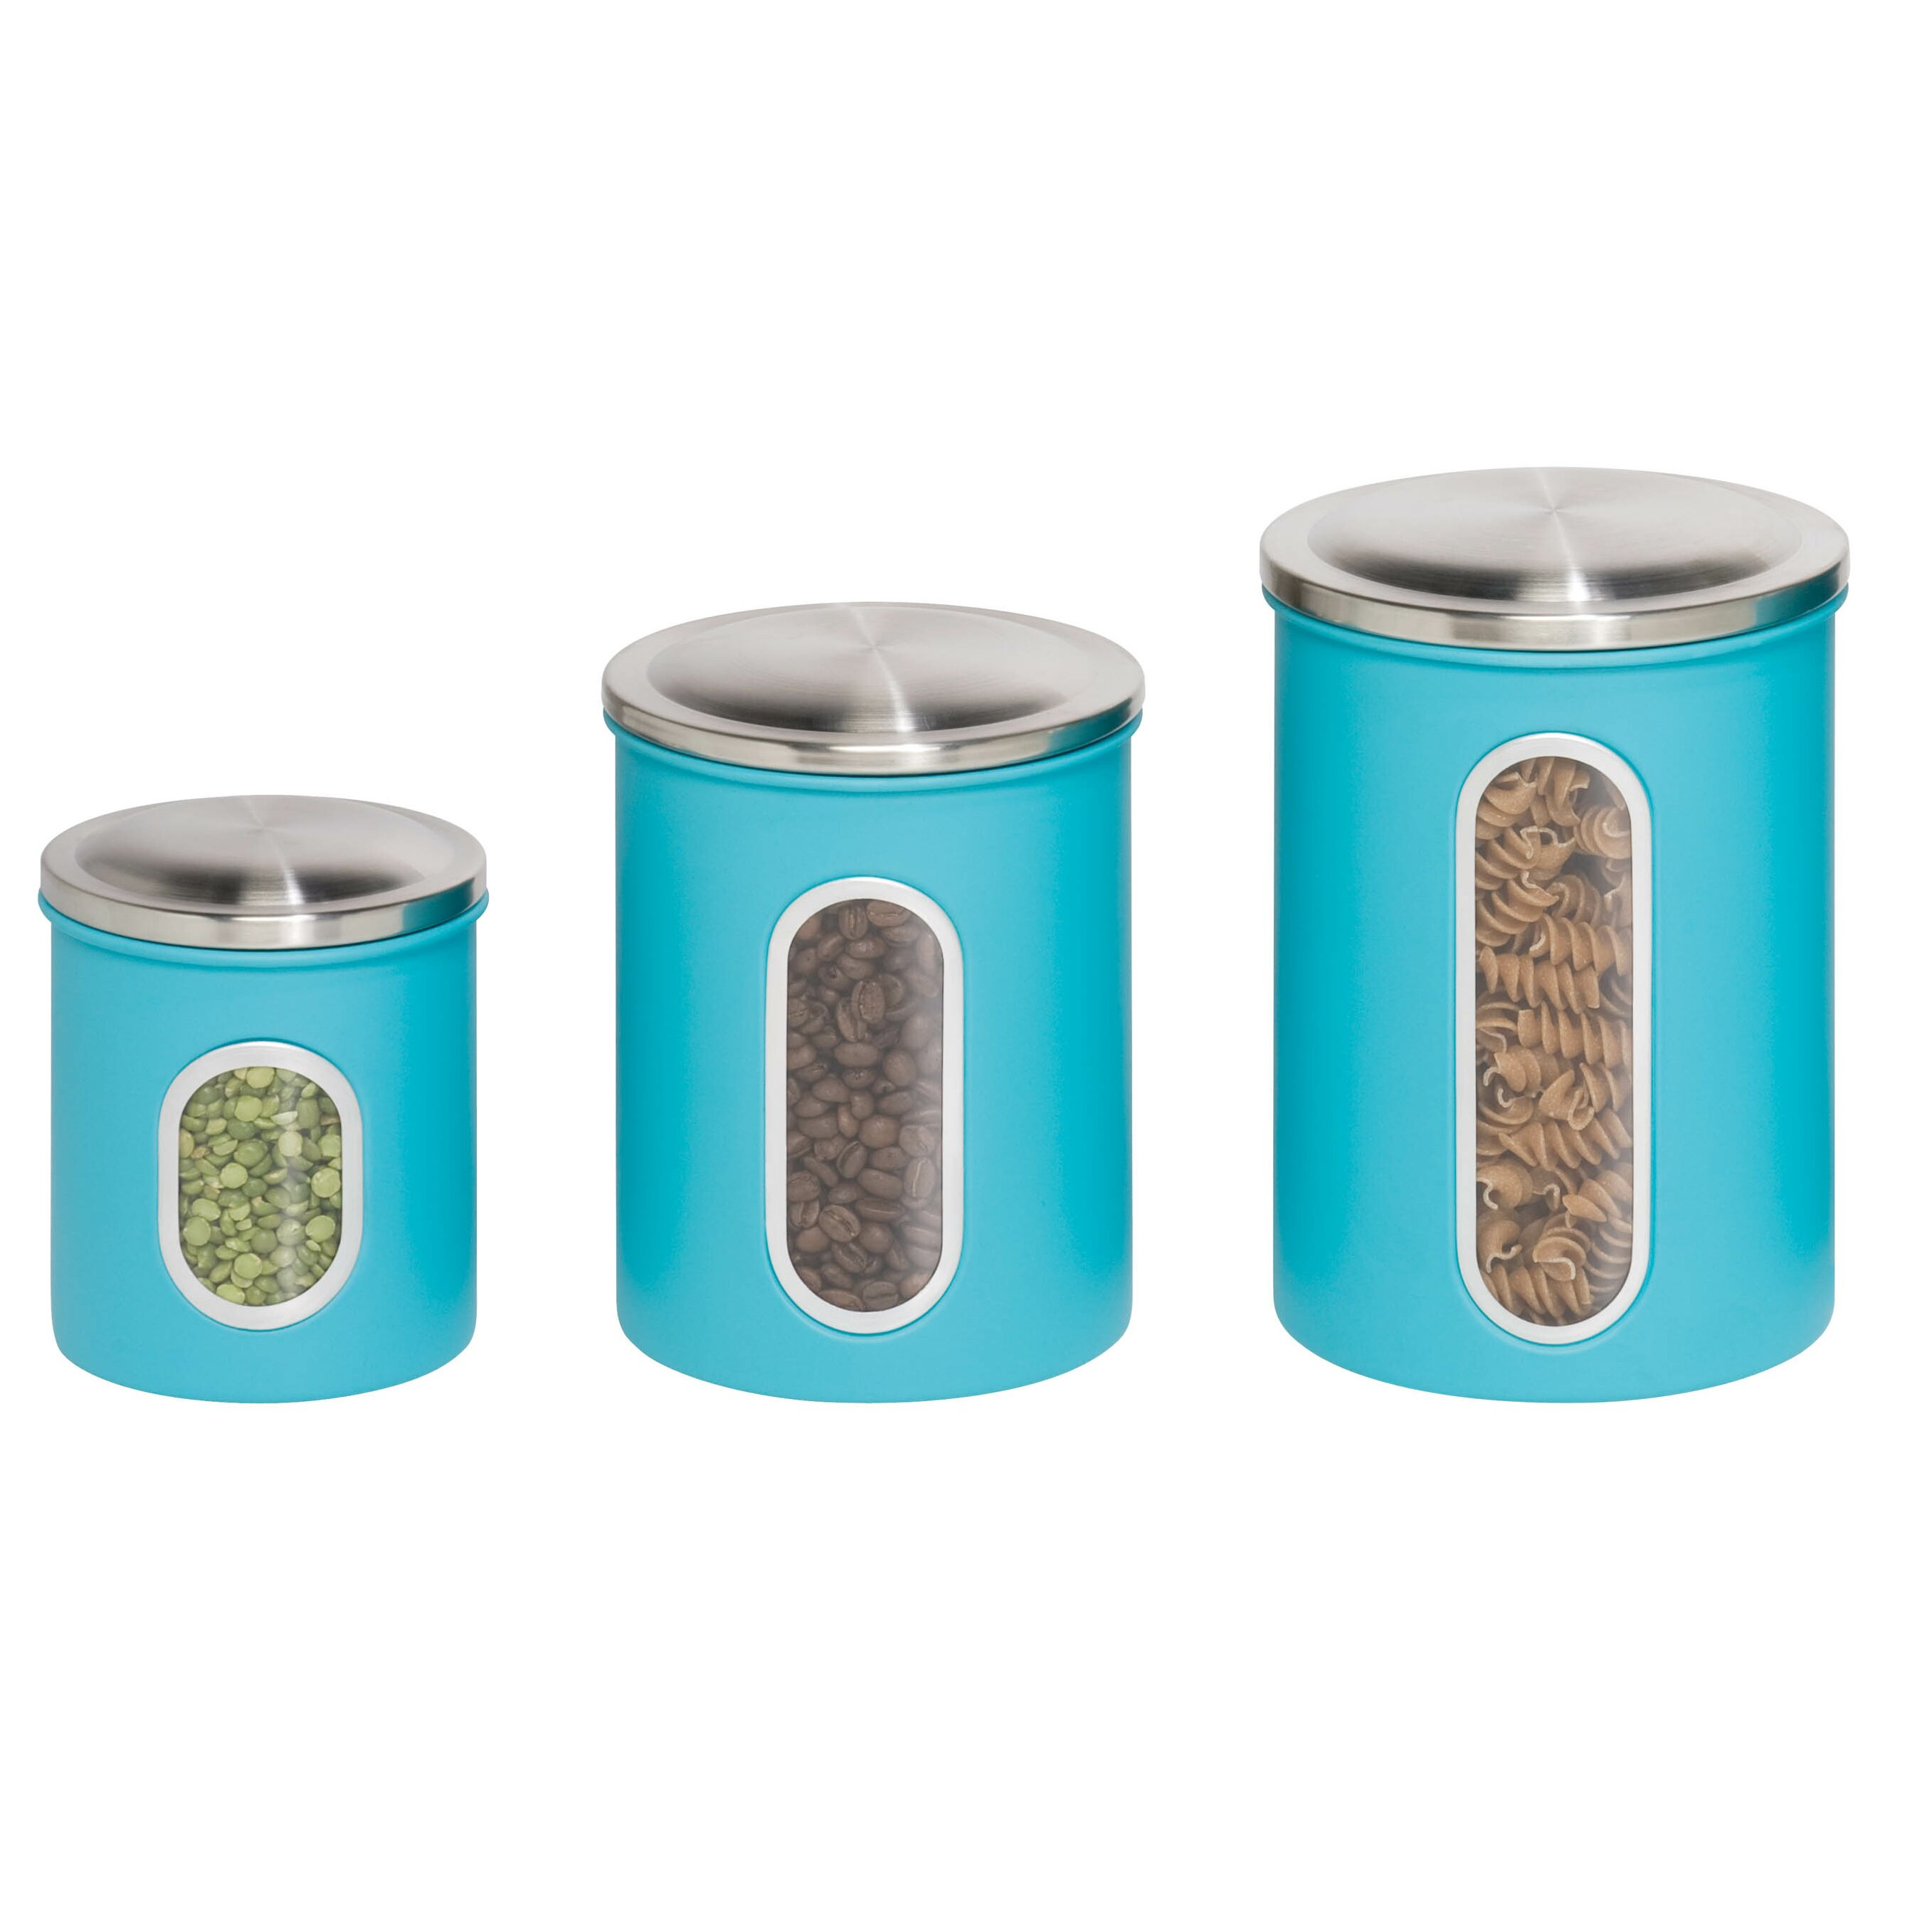 metal kitchen canisters & jars you'll love | wayfair